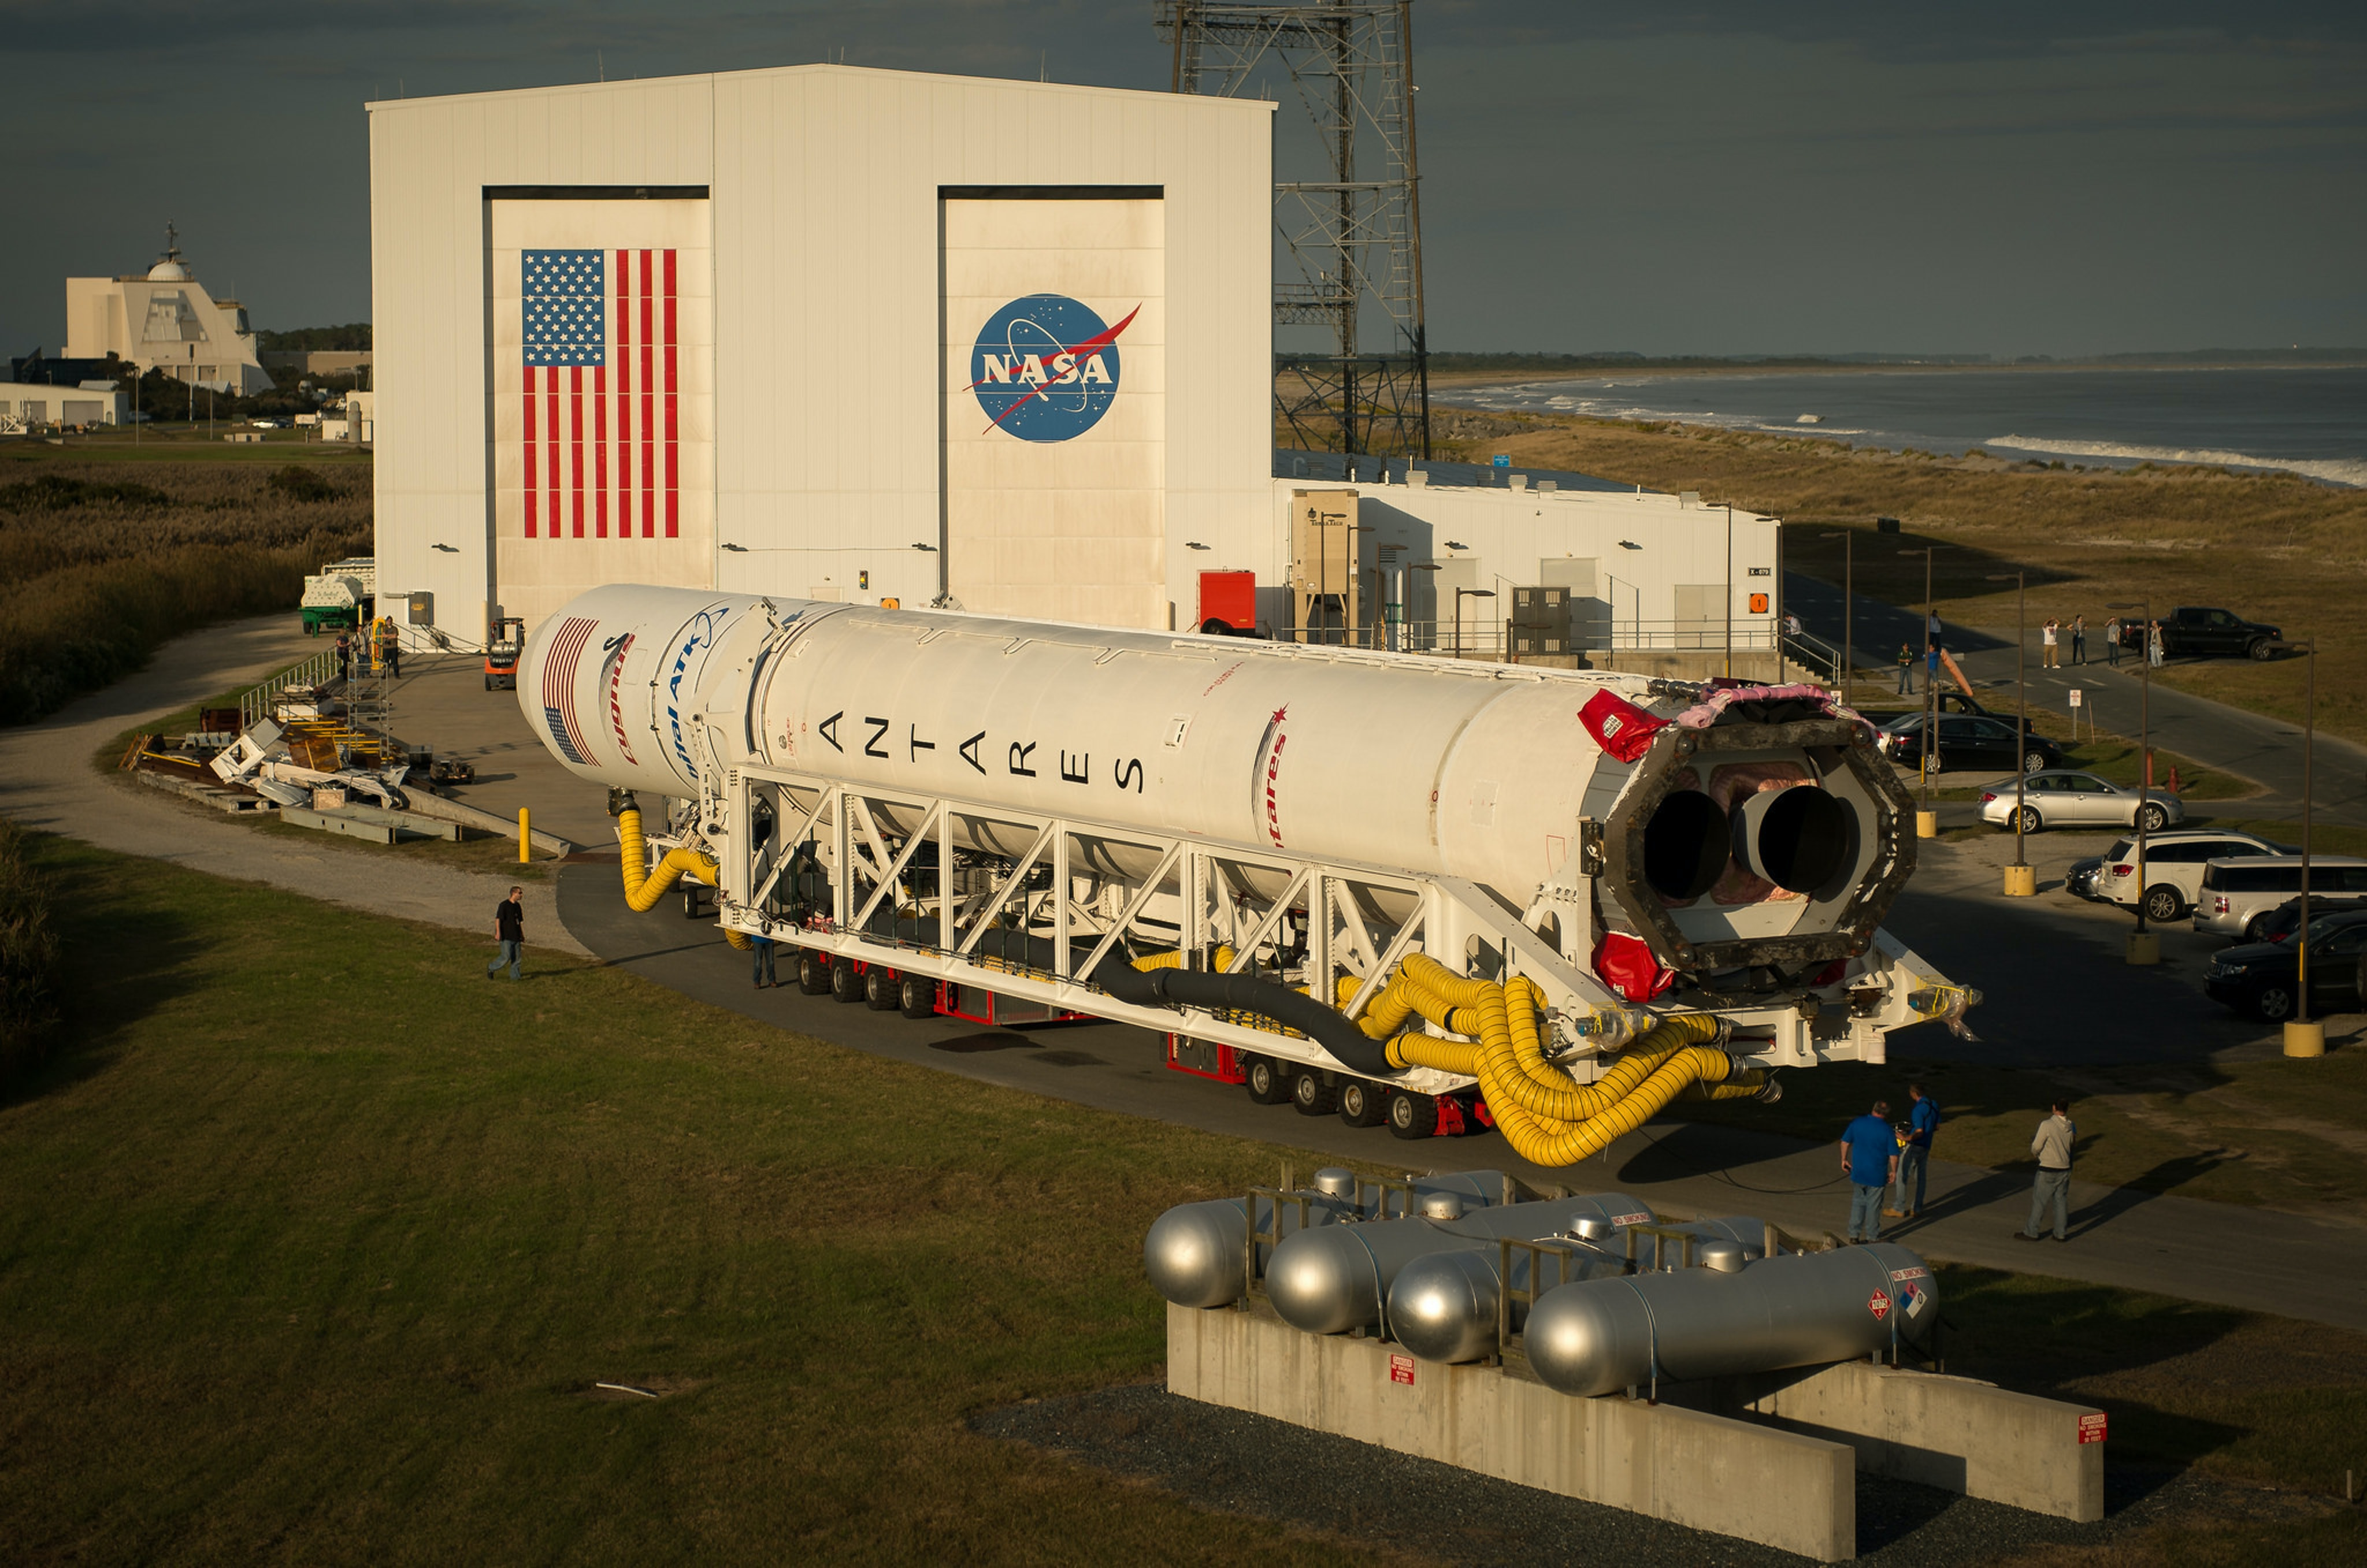 The Orbital ATK Antares rocket is rolled out of the integration facility and to the launch pad on October 13, 2016.